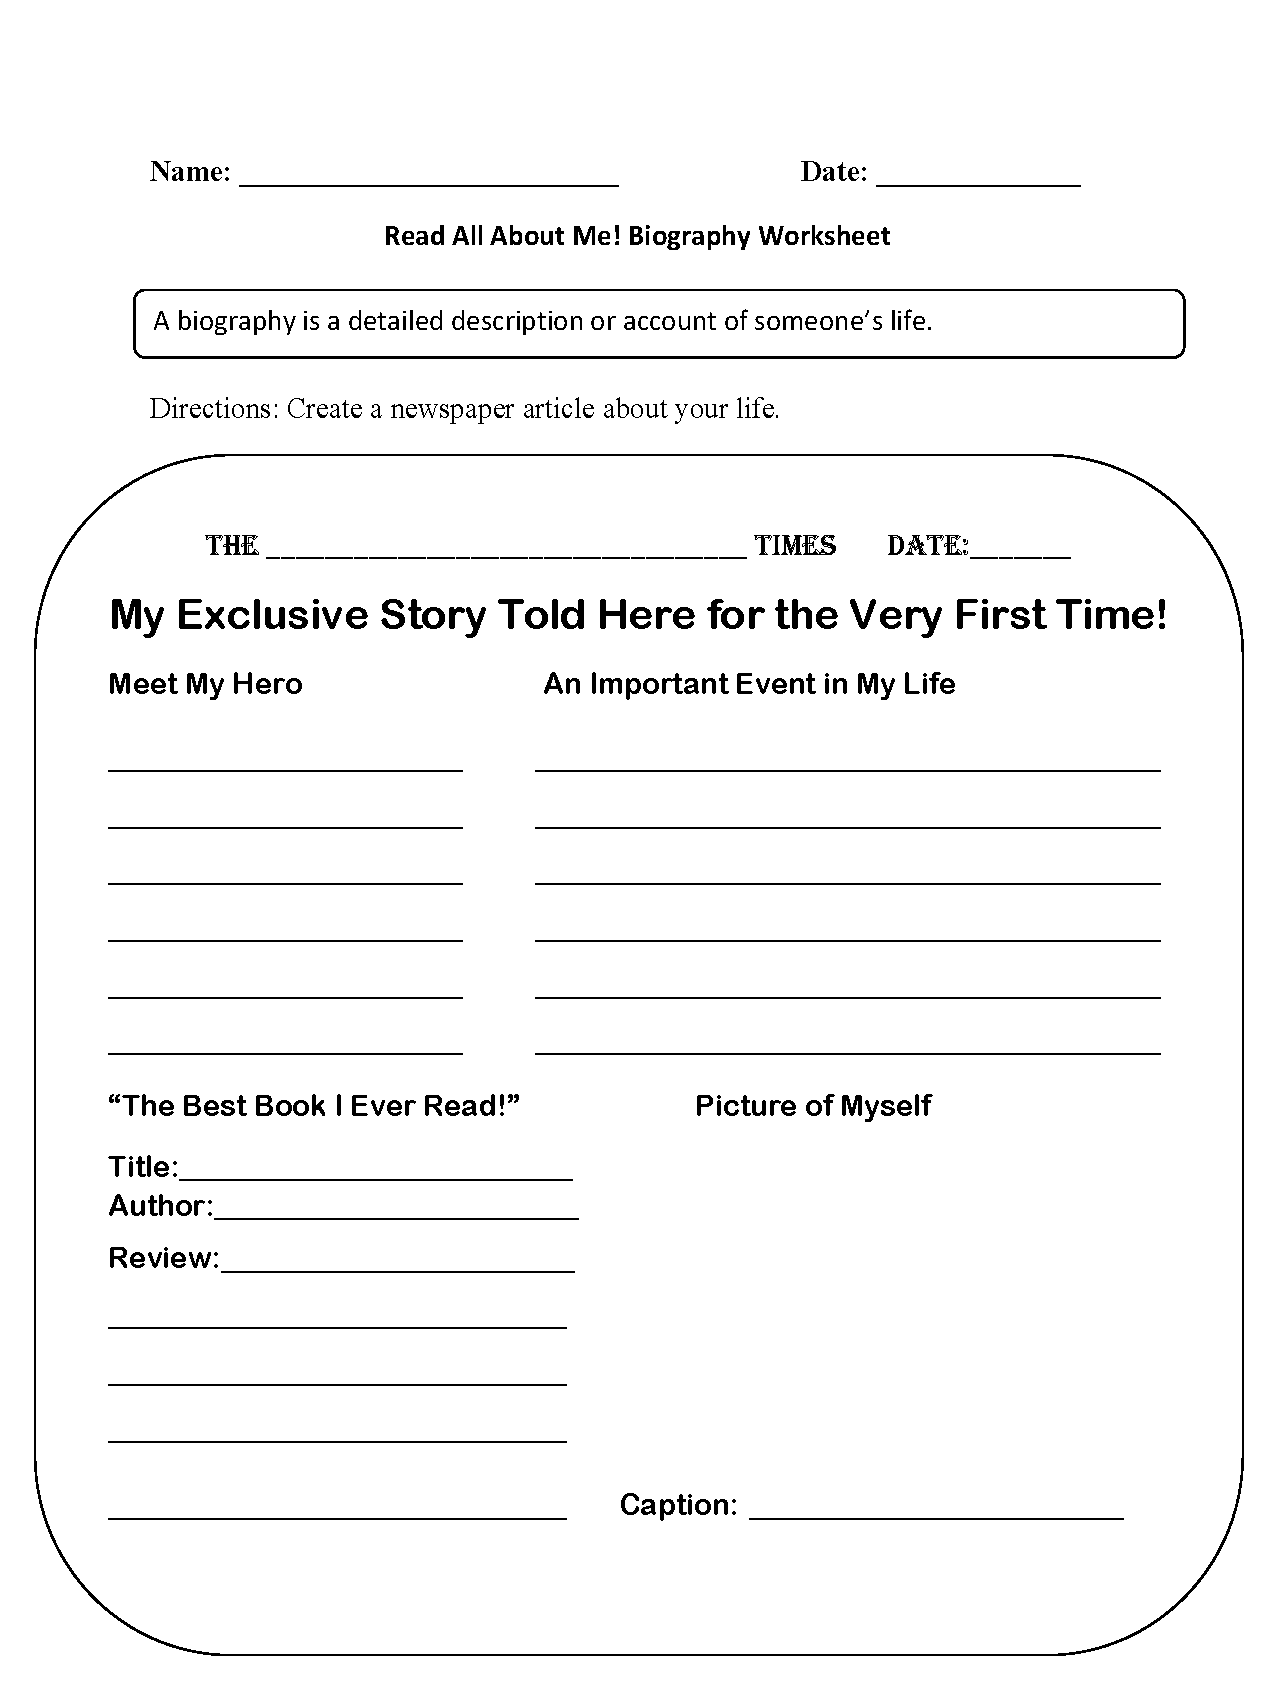 Worksheets 12th Grade Math Worksheets englishlinx com back to school worksheets worksheets